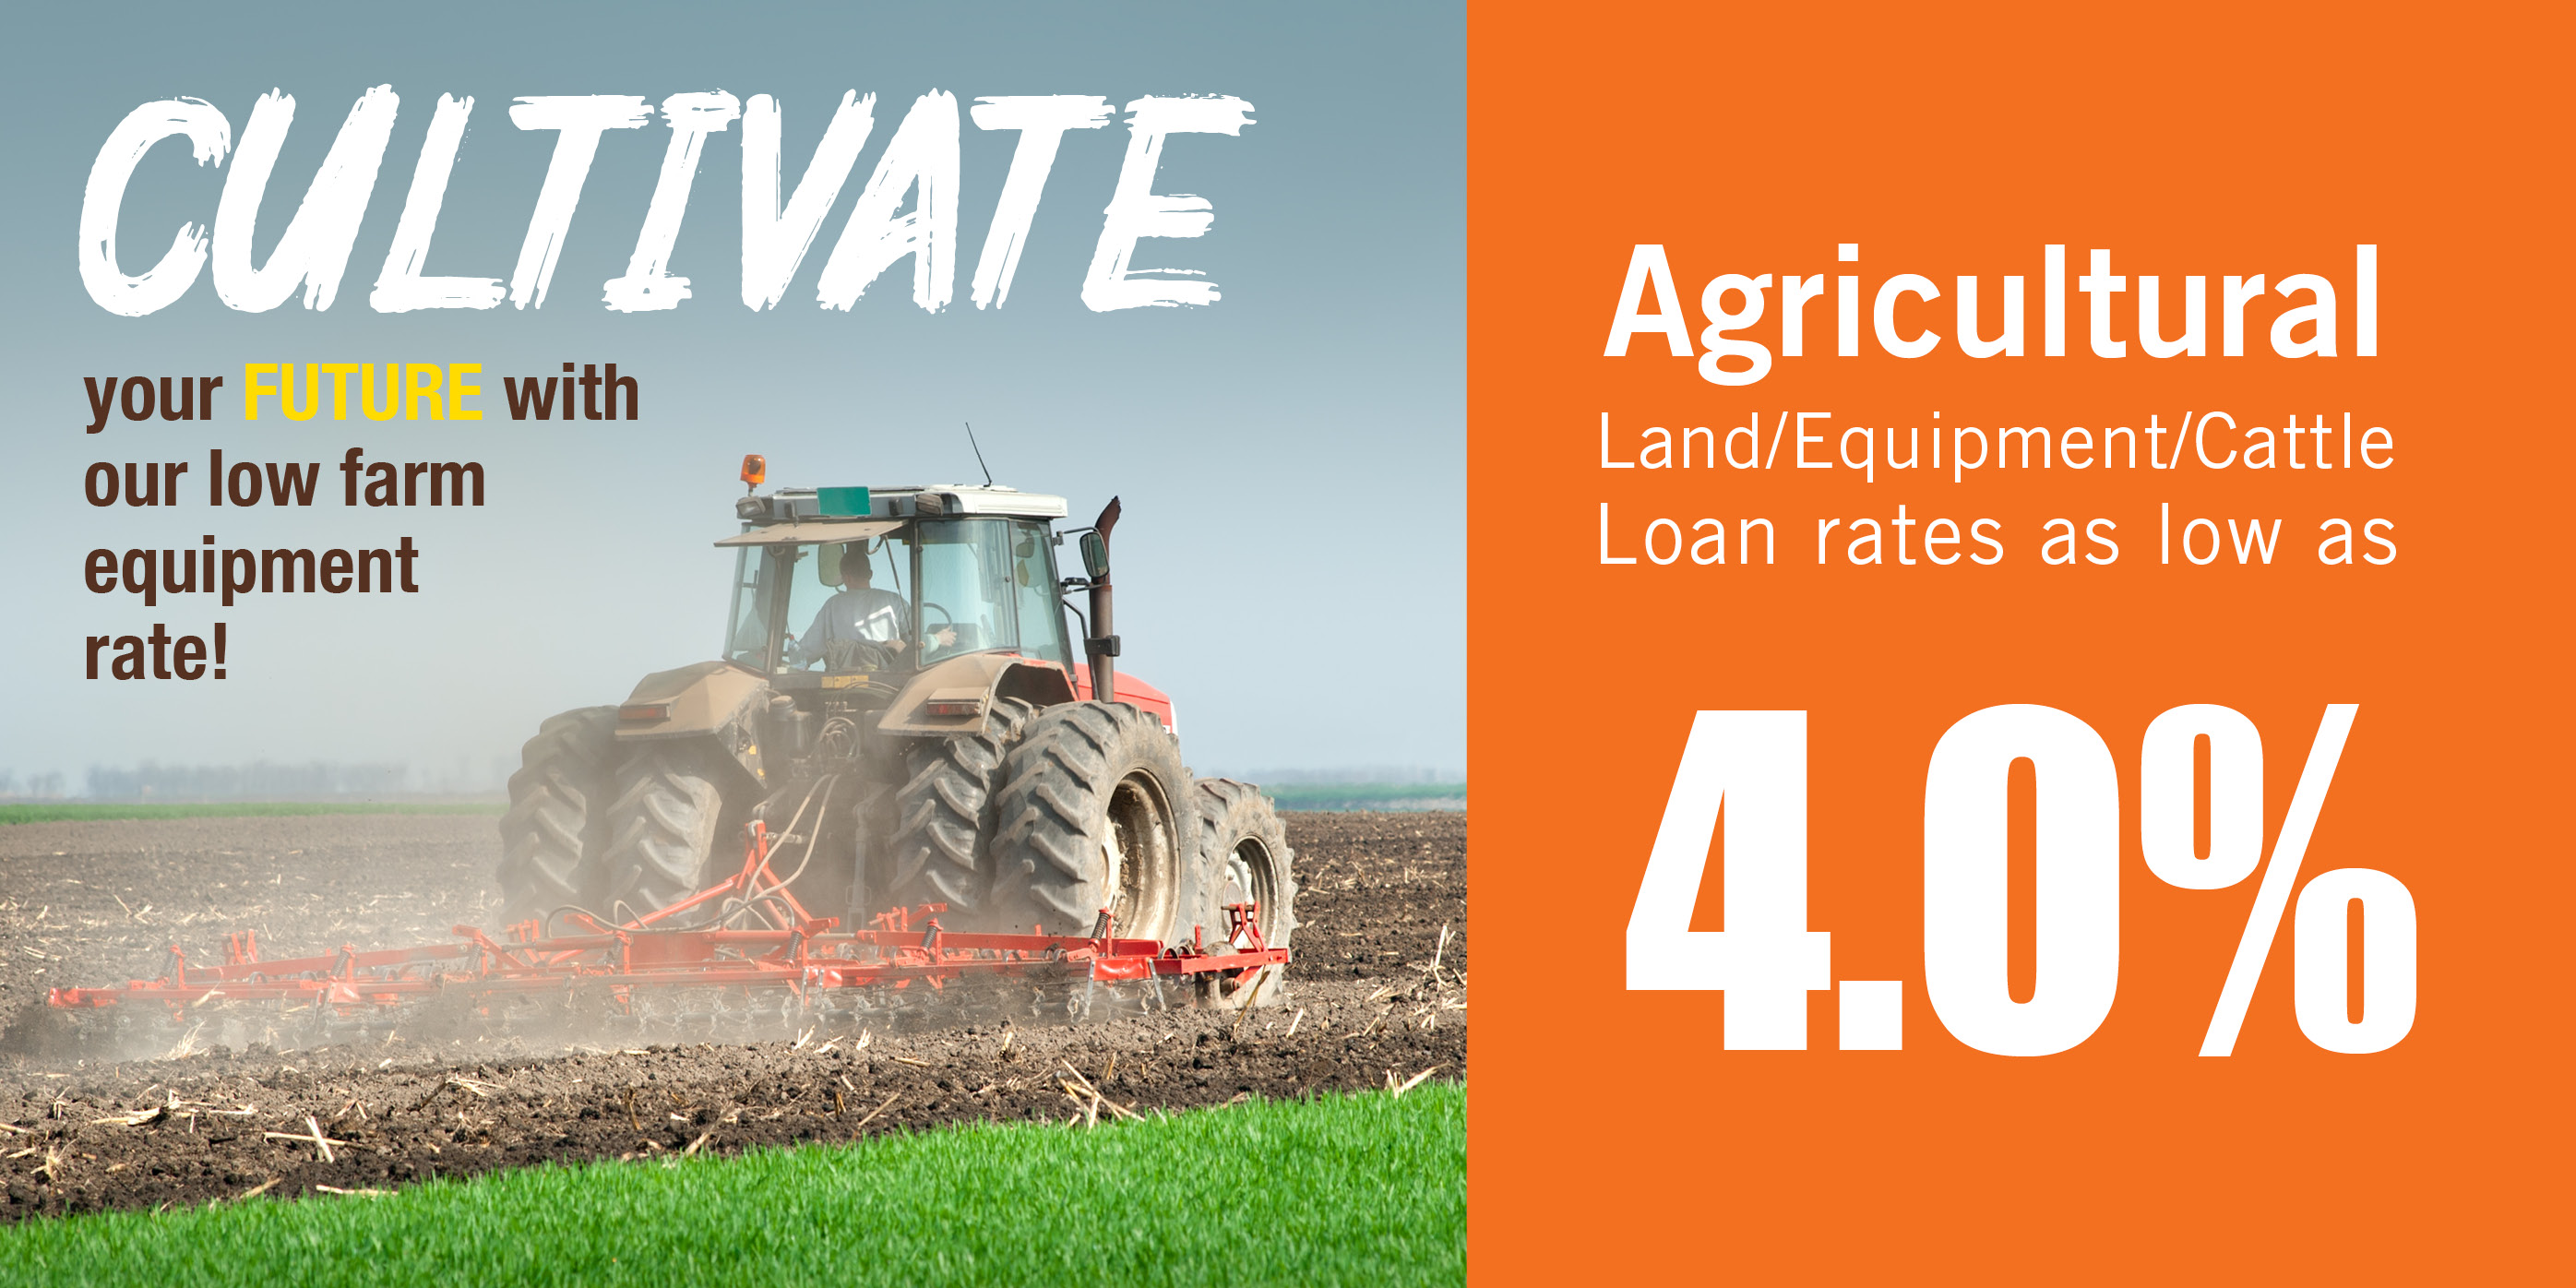 Agricultural Loans available for a low rate of 4.0% (rates subject to change; certain conditions apply)